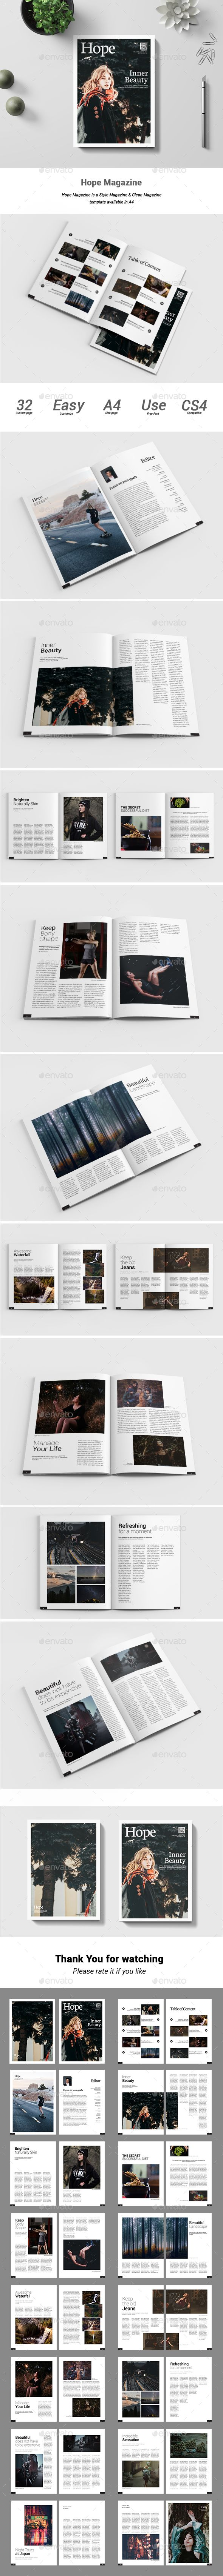 Hope Magazine #clean #backpacker  • Download here → https://graphicriver.net/item/hope-magazine/21176126?ref=pxcr